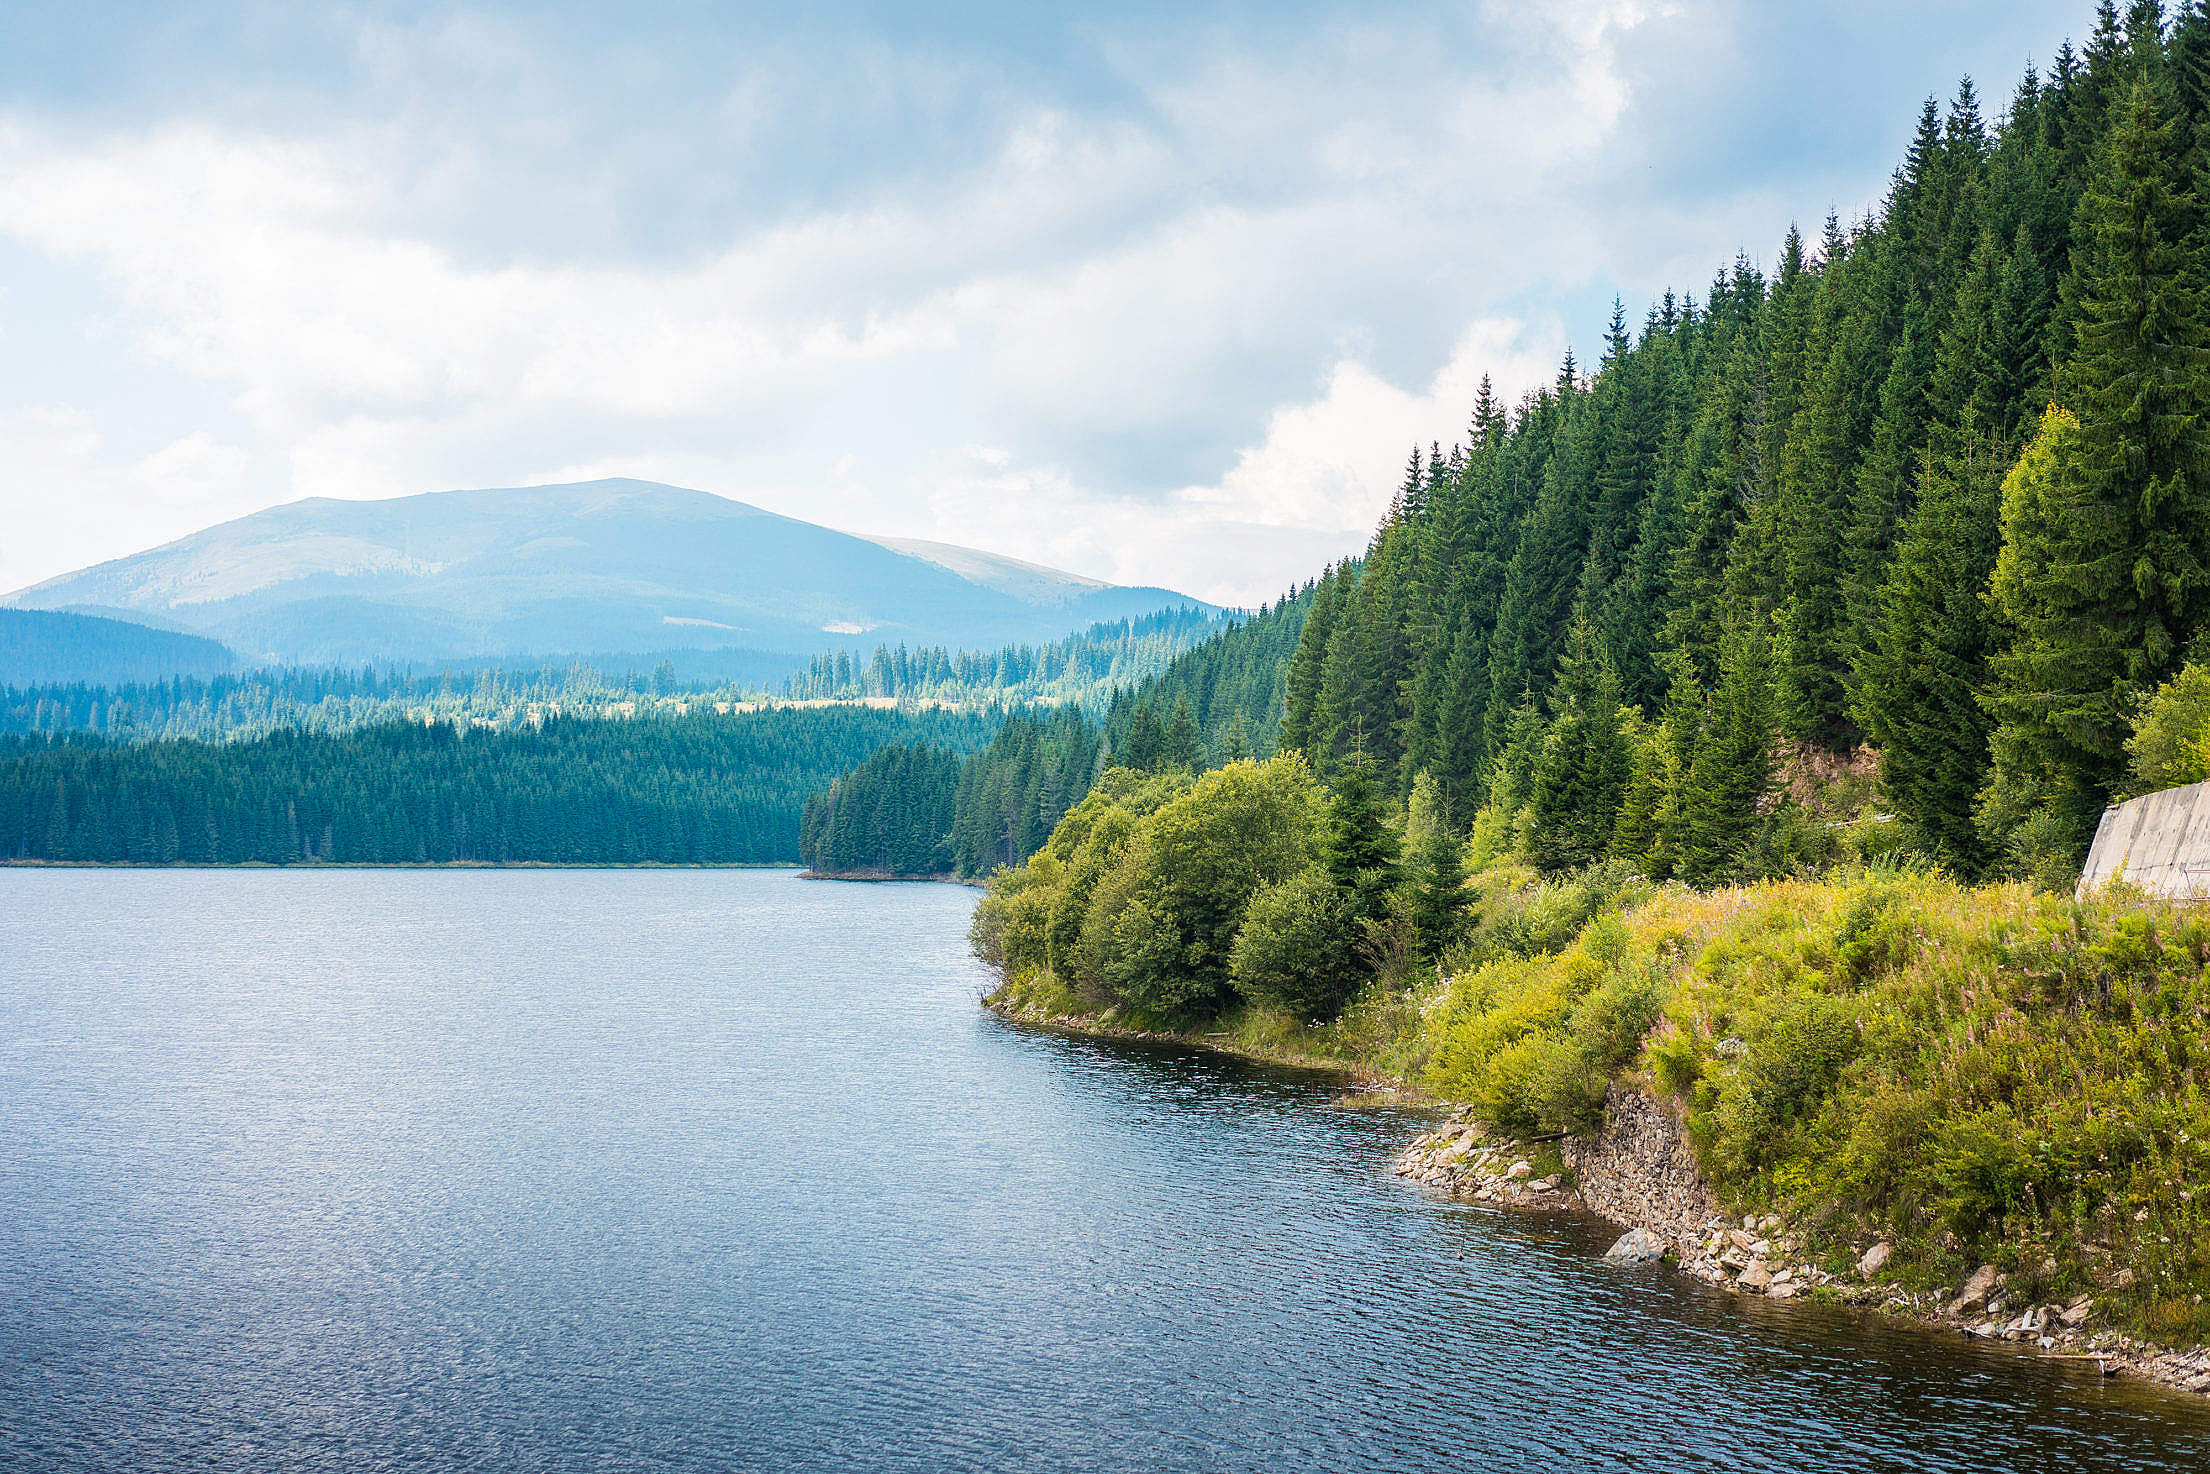 Lake Shore and Forests Scenery in Romania Free Stock Photo